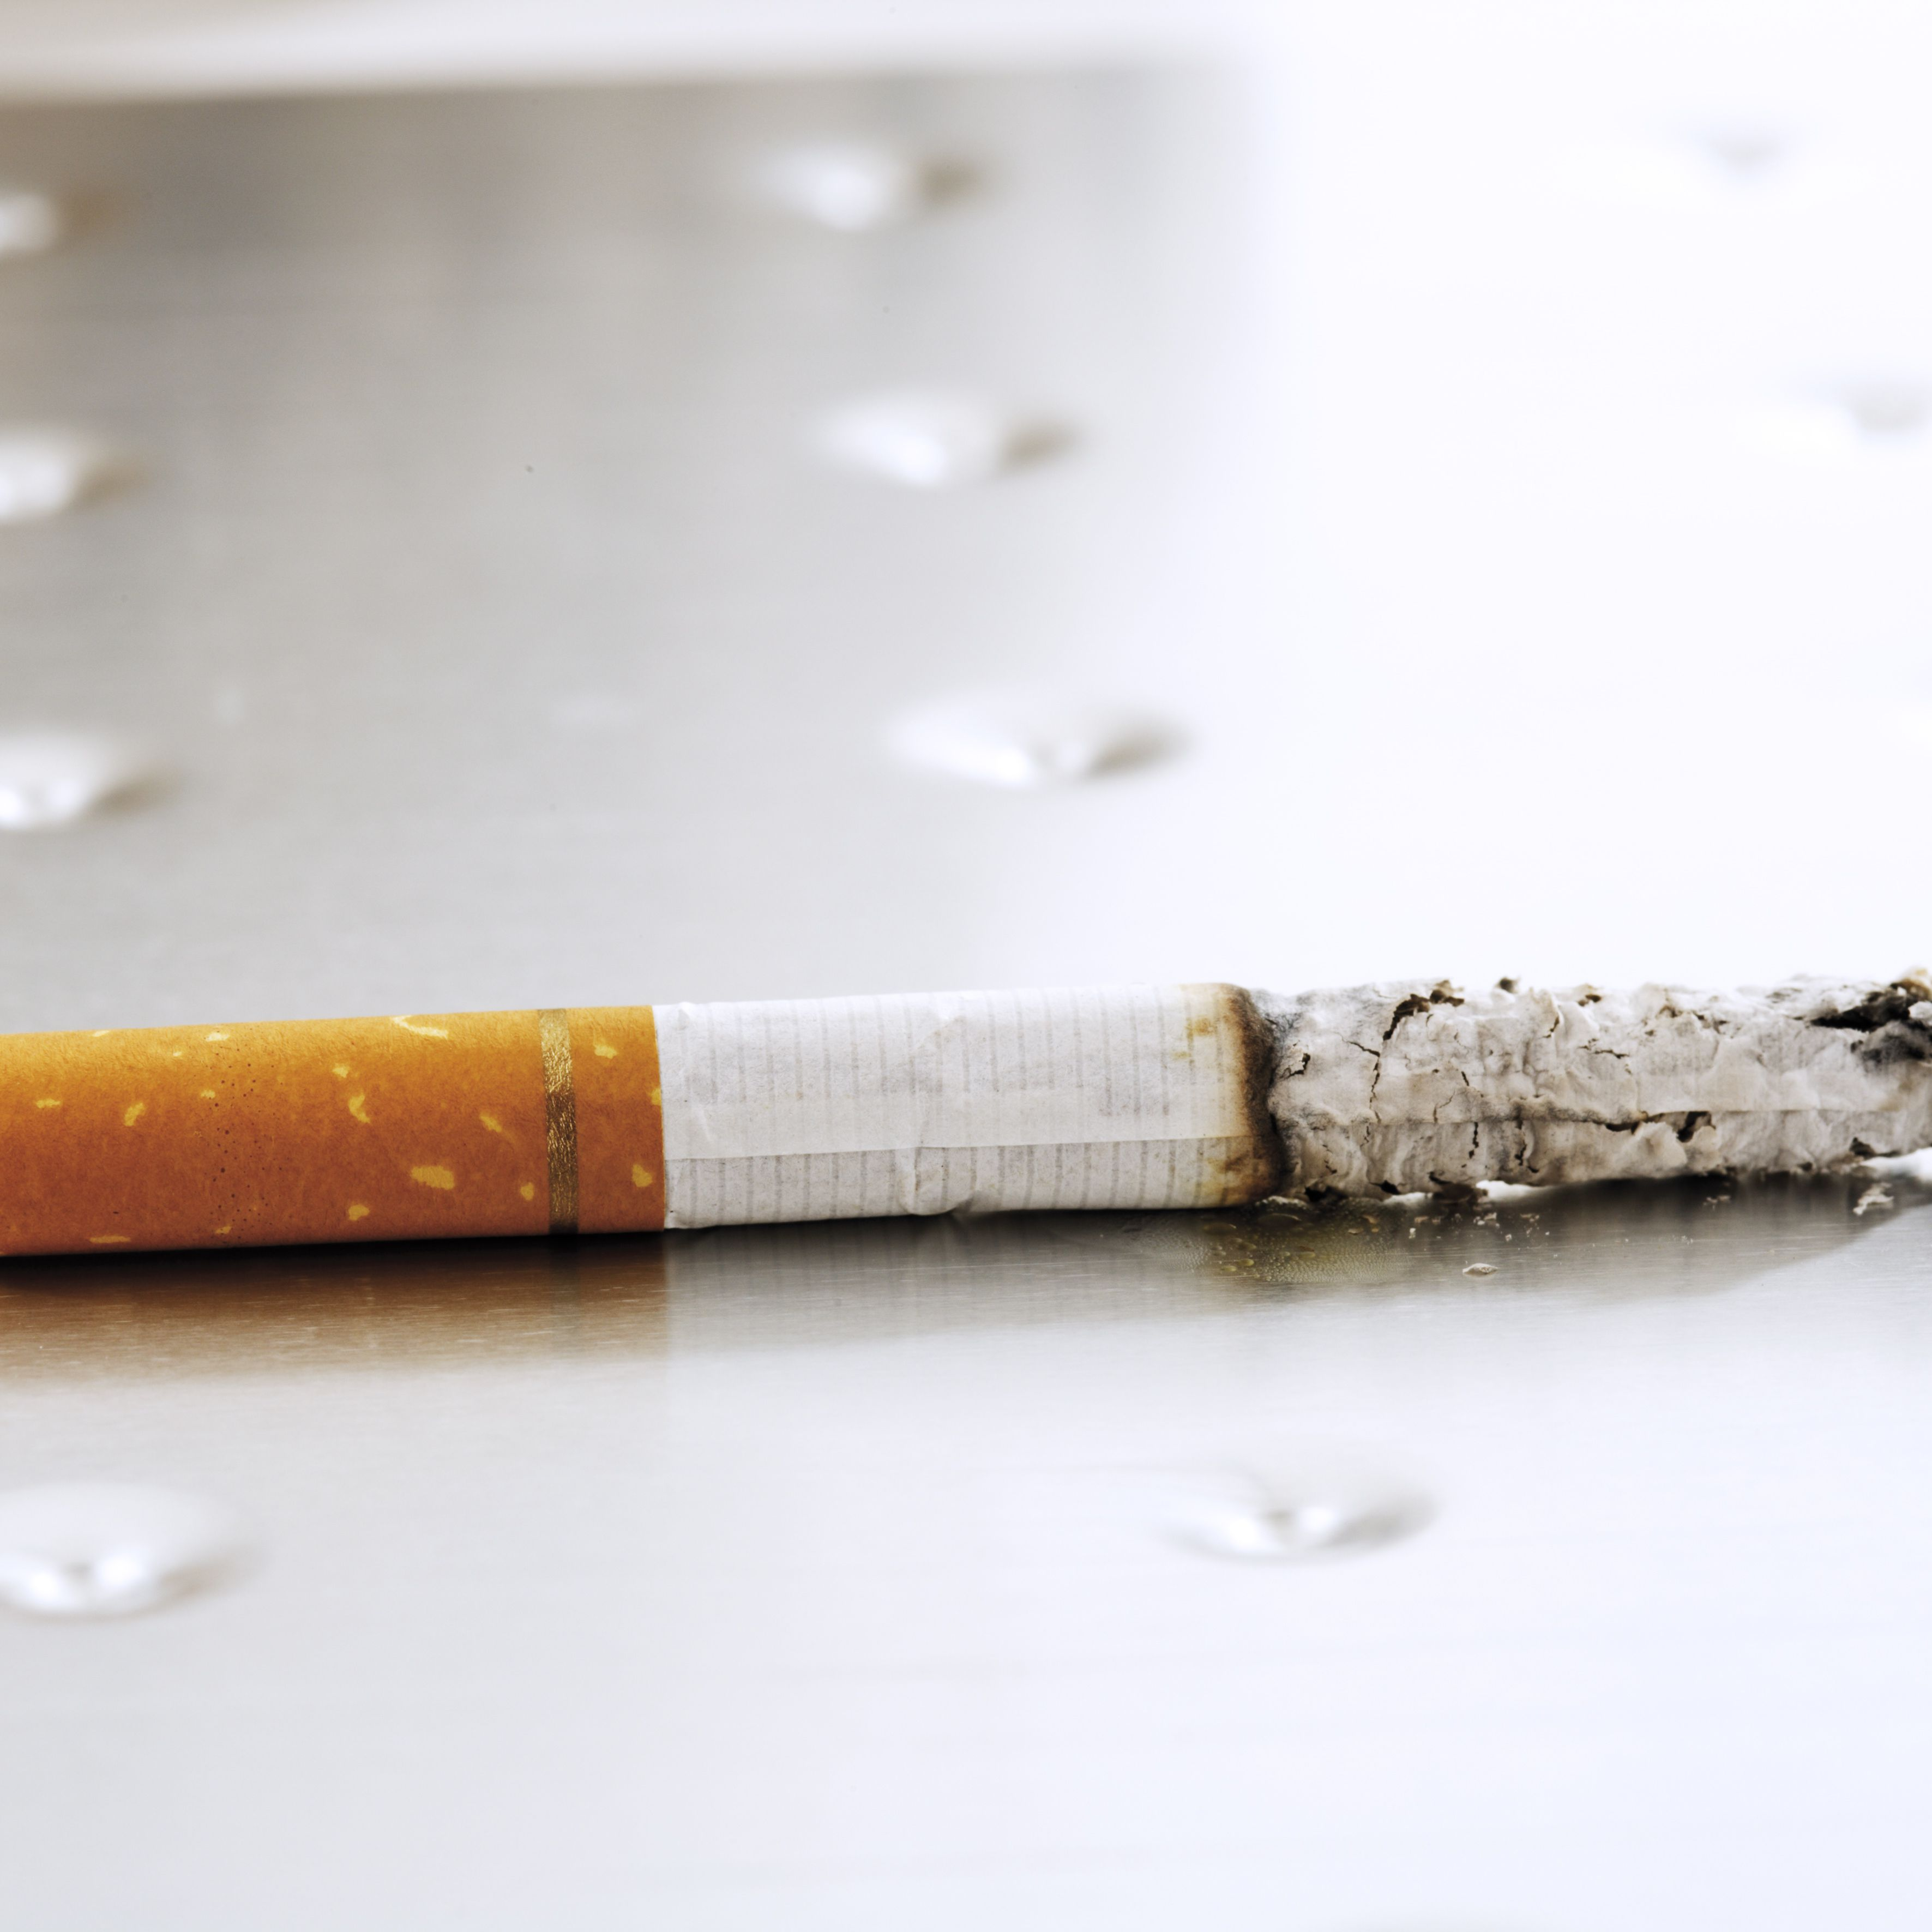 Is It OK to Smoke Just One Cigarette After Quitting?